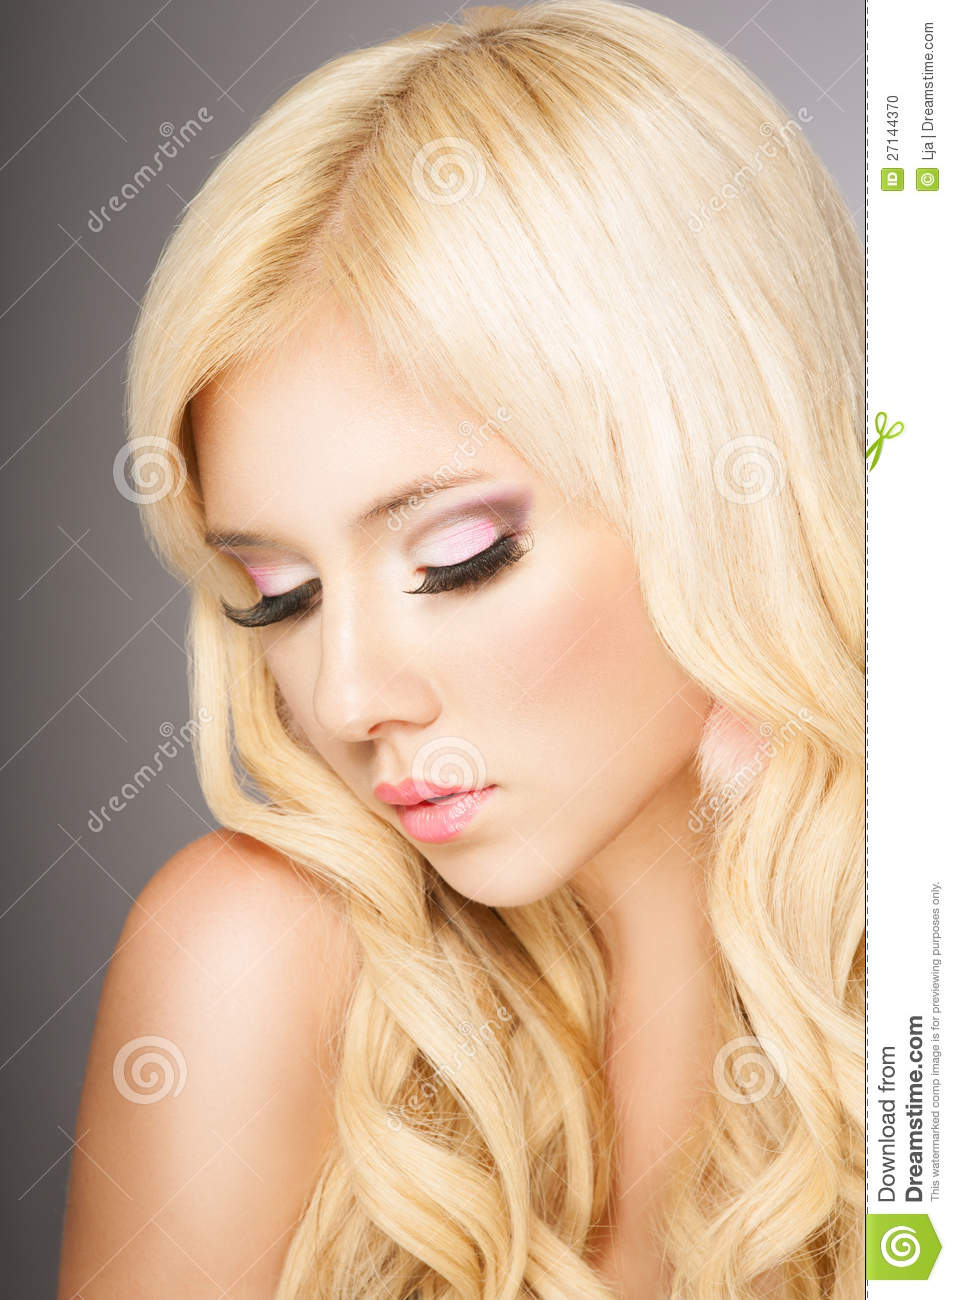 blond woman stock photo image 27144370 crown clipart black and white crown clipart